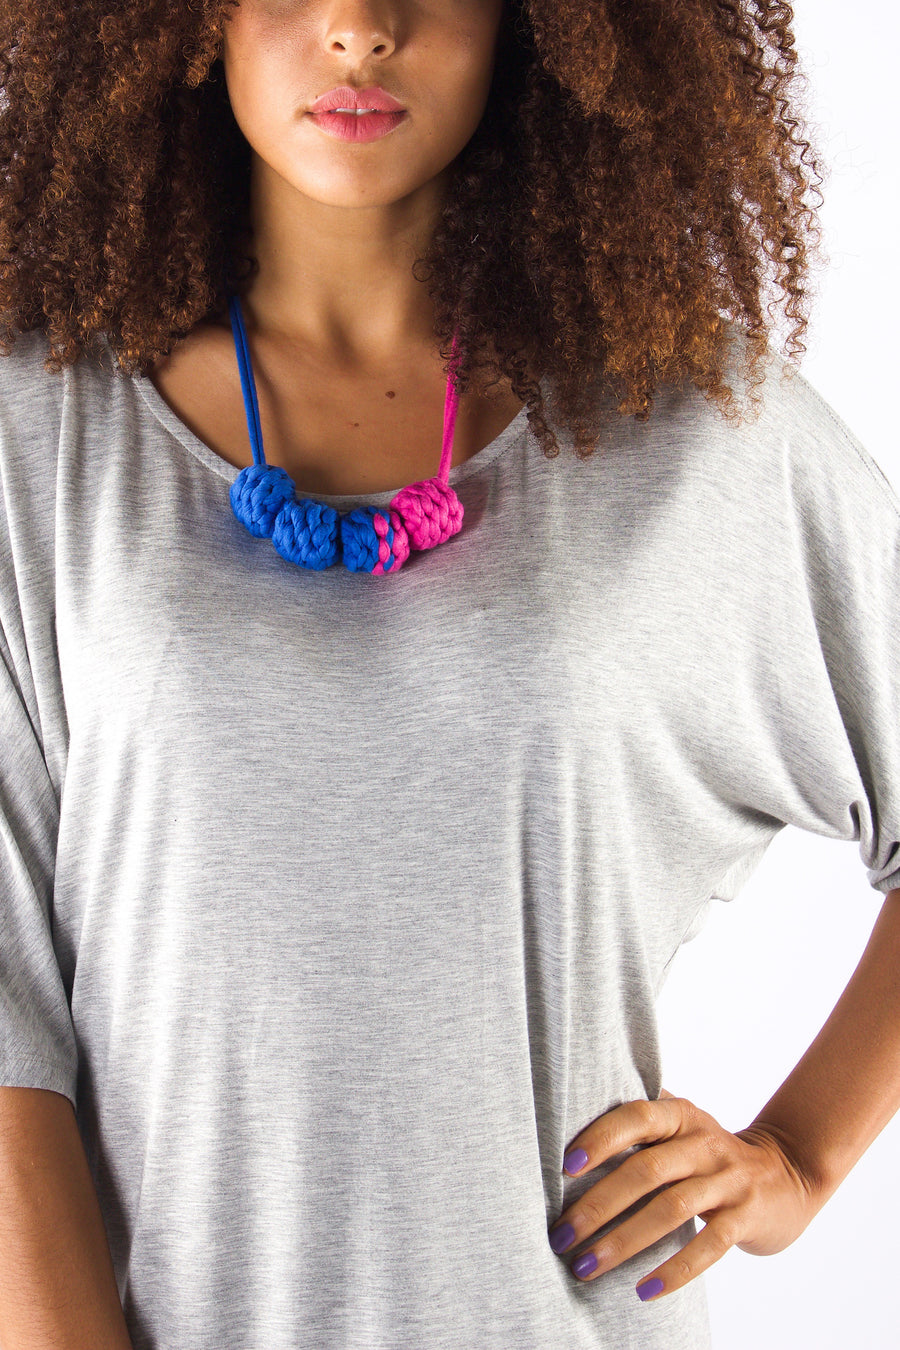 Taikensonzai Zadie necklace made from textile mill offcuts, available exclusively on ZERRIN